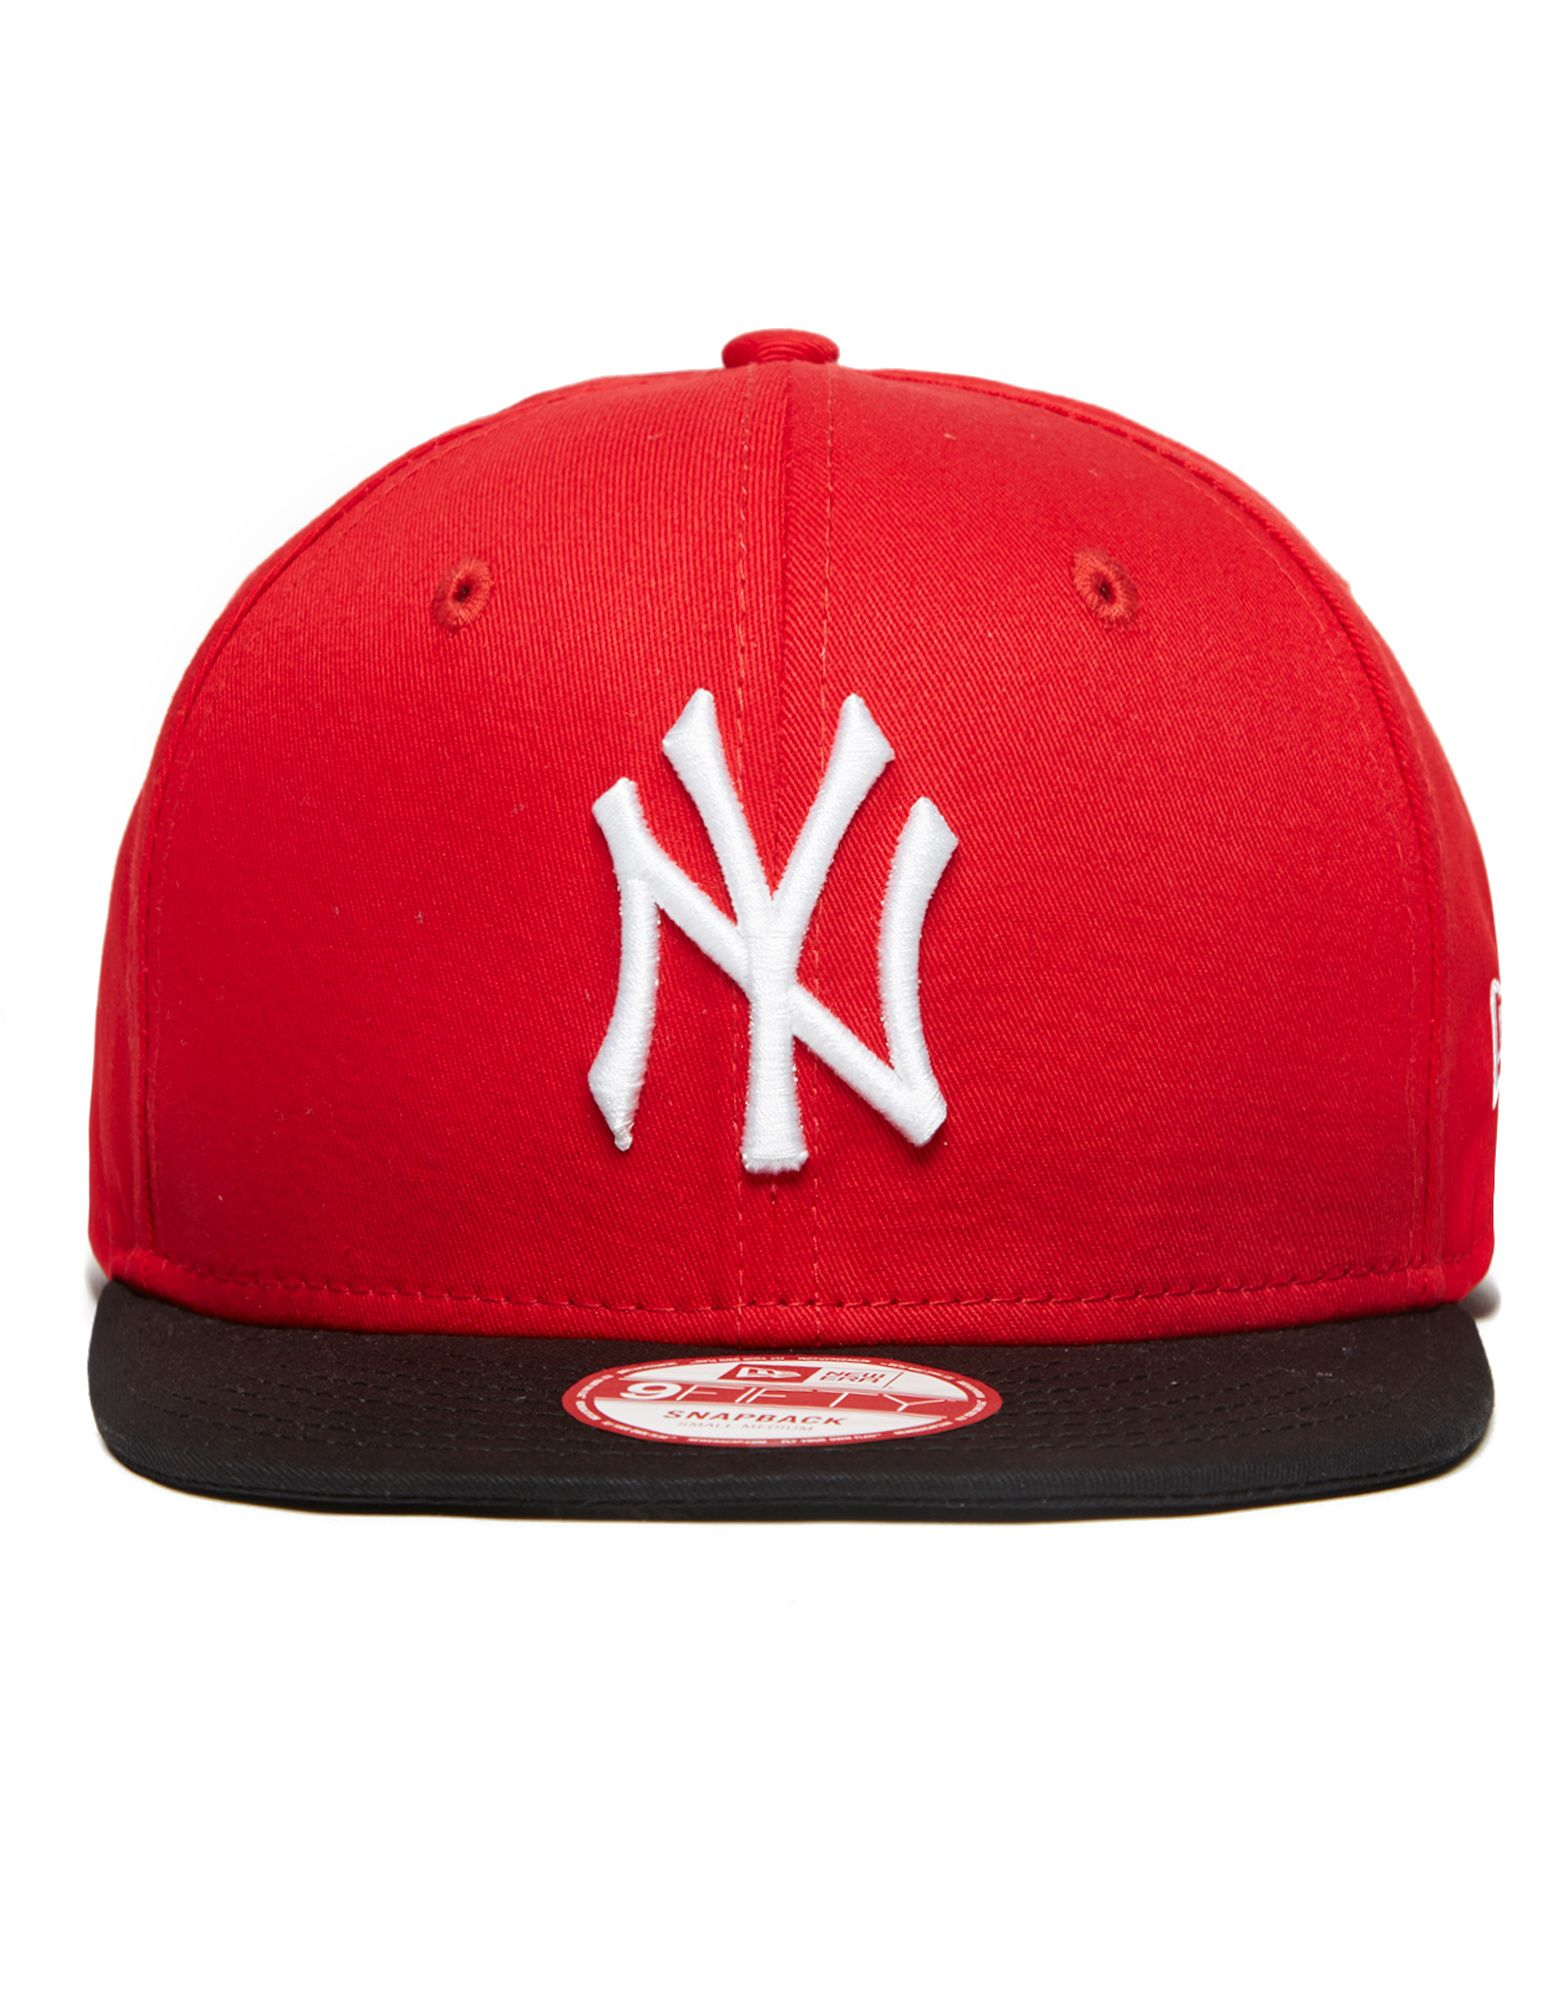 New Era MLB New York Yankees Block Snapback Cap